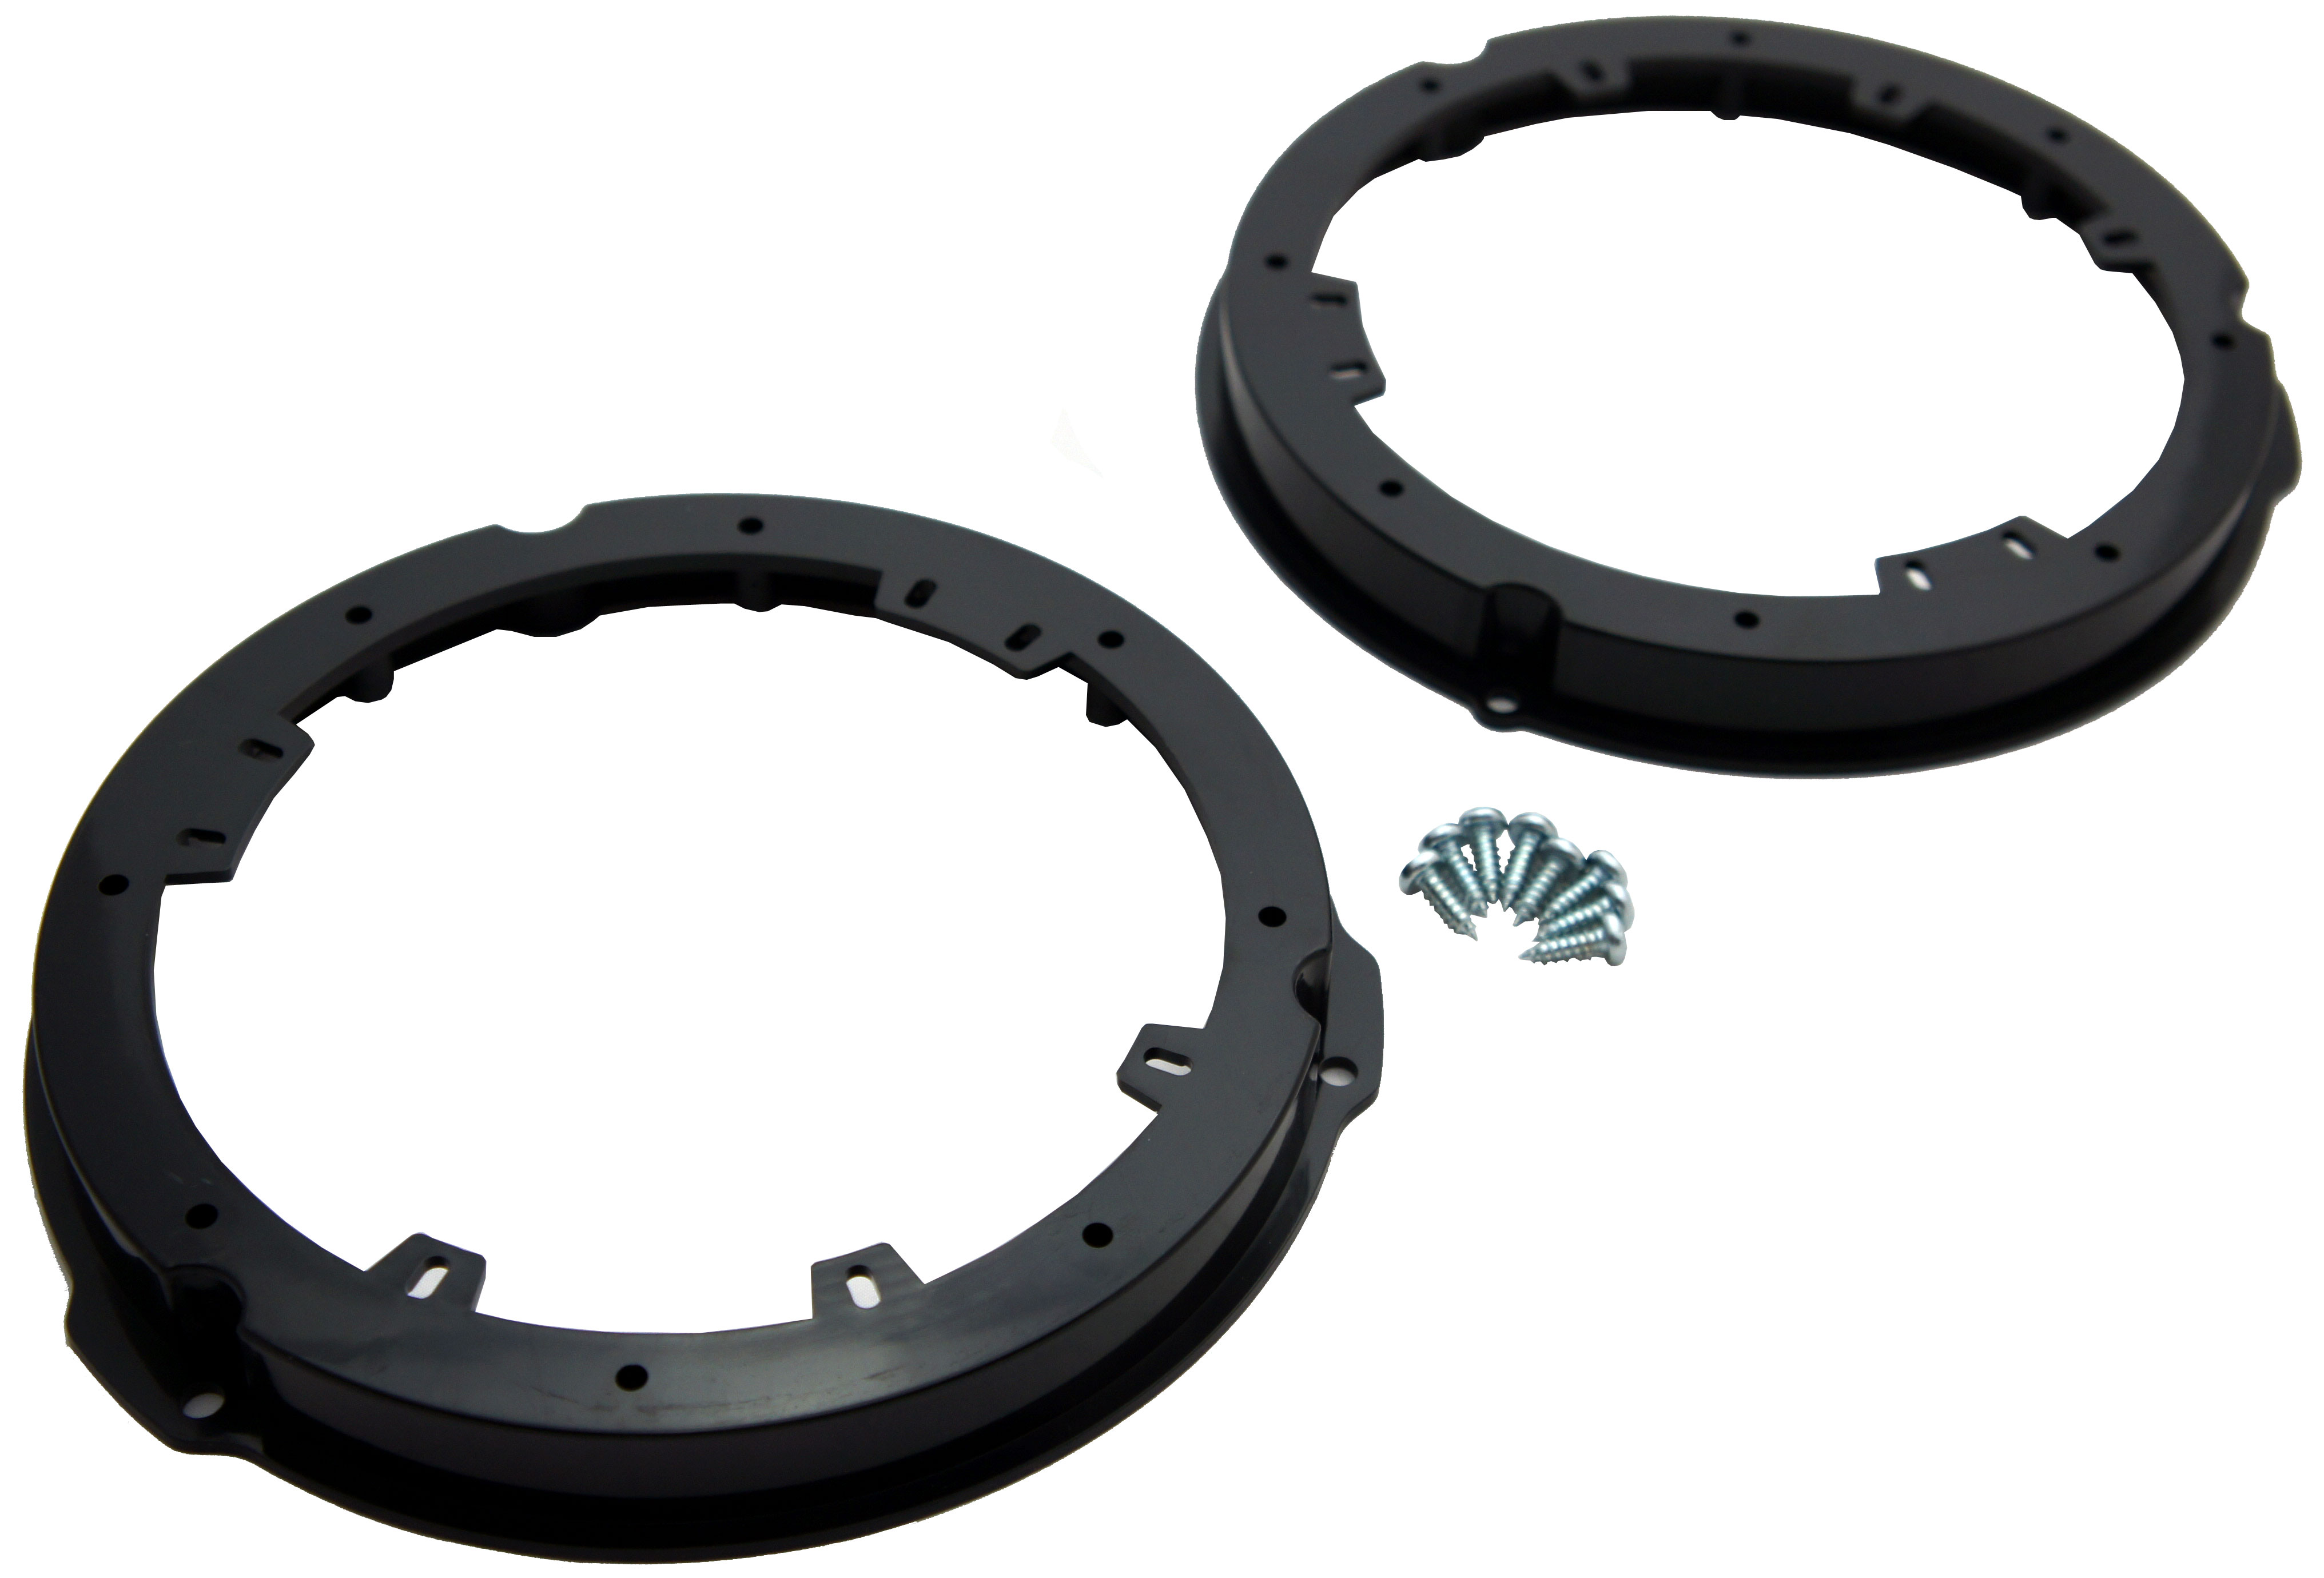 """Ford Lincoln Multi Model Factory to Aftermarket 6 1/2"""" 6.5"""" Speakers Adapter Kit"""